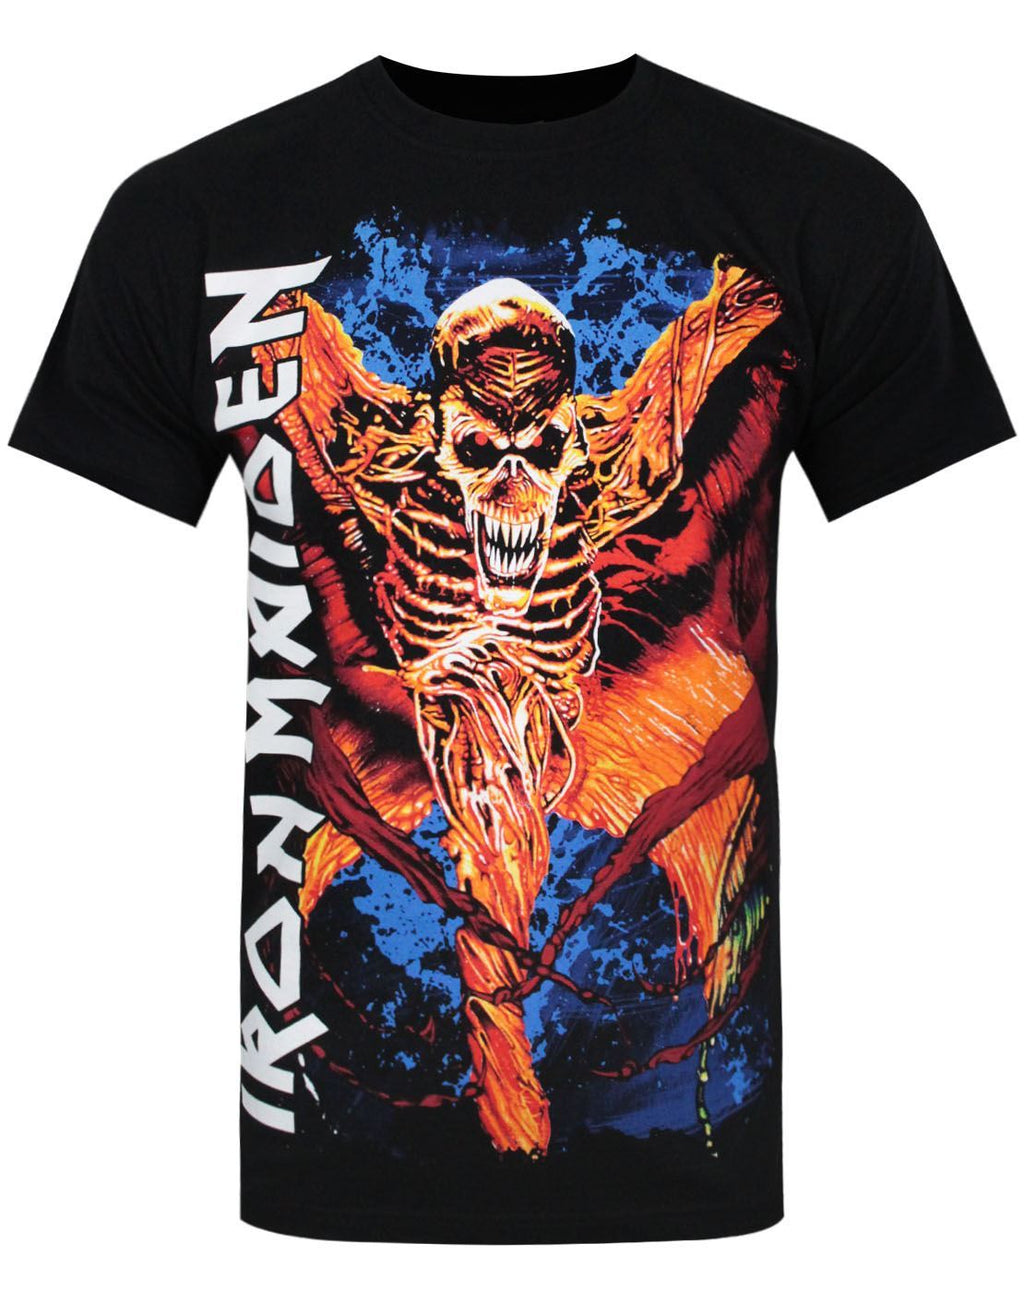 Iron Maiden Skeleton Vampyr Men's T-Shirt